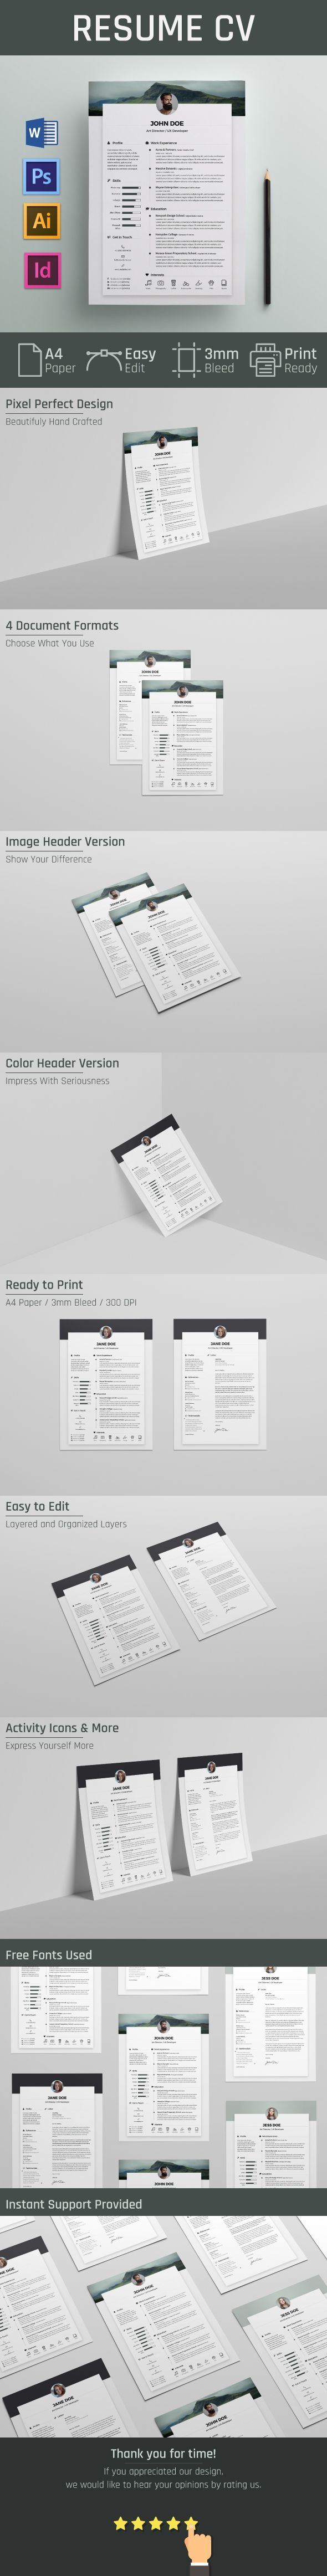 check out this behance project free resume cv template https - Free Resume Check